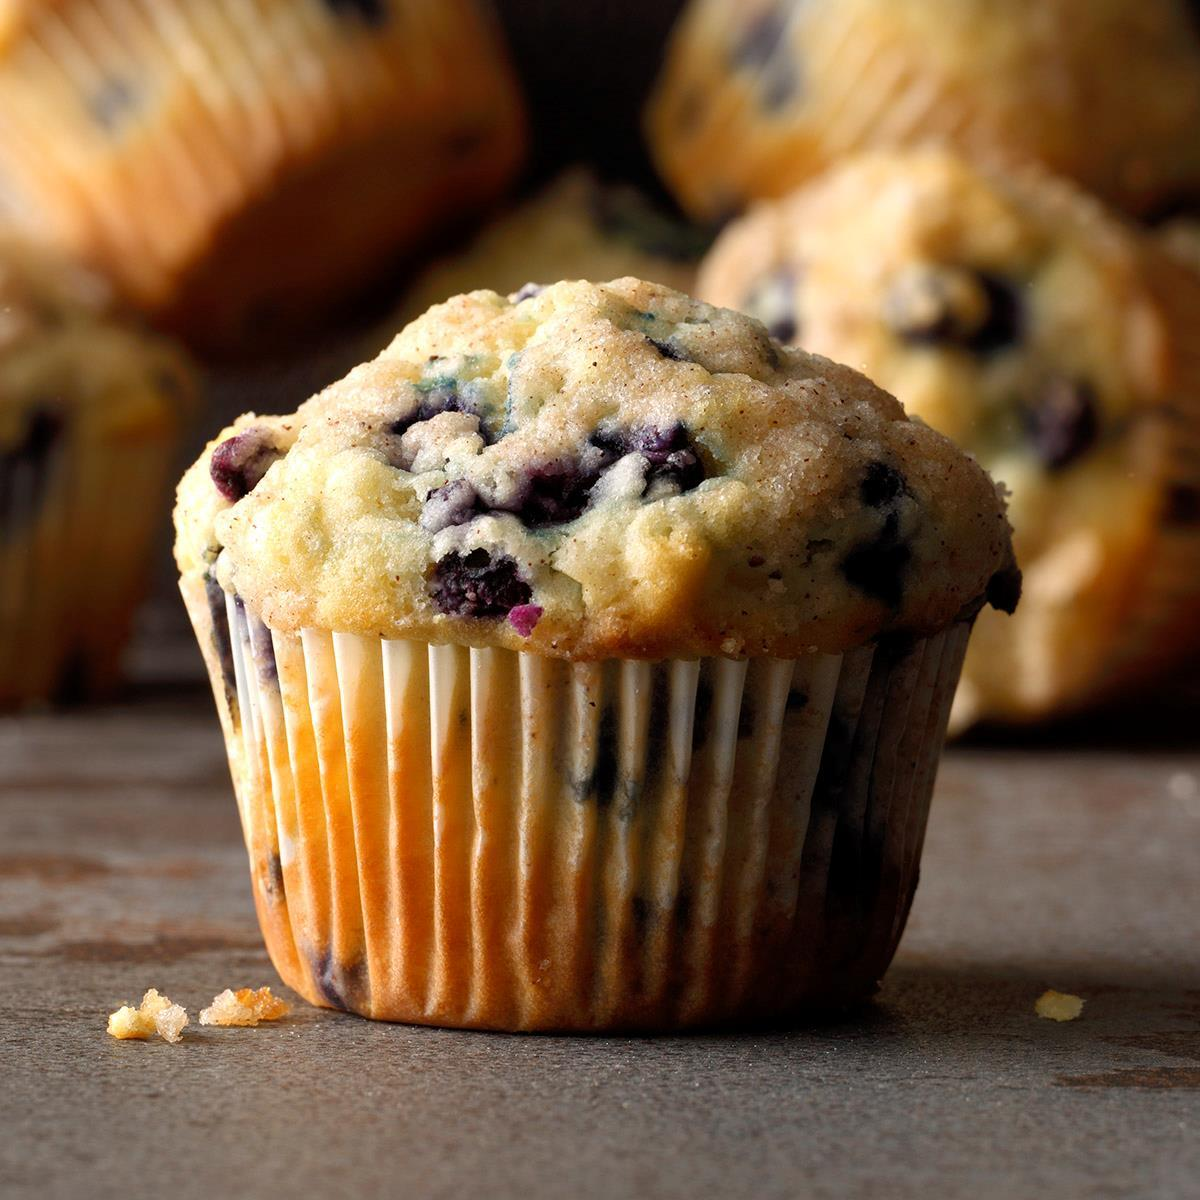 Wild Blueberry Muffins Recipe: How to Make It | Taste of Home